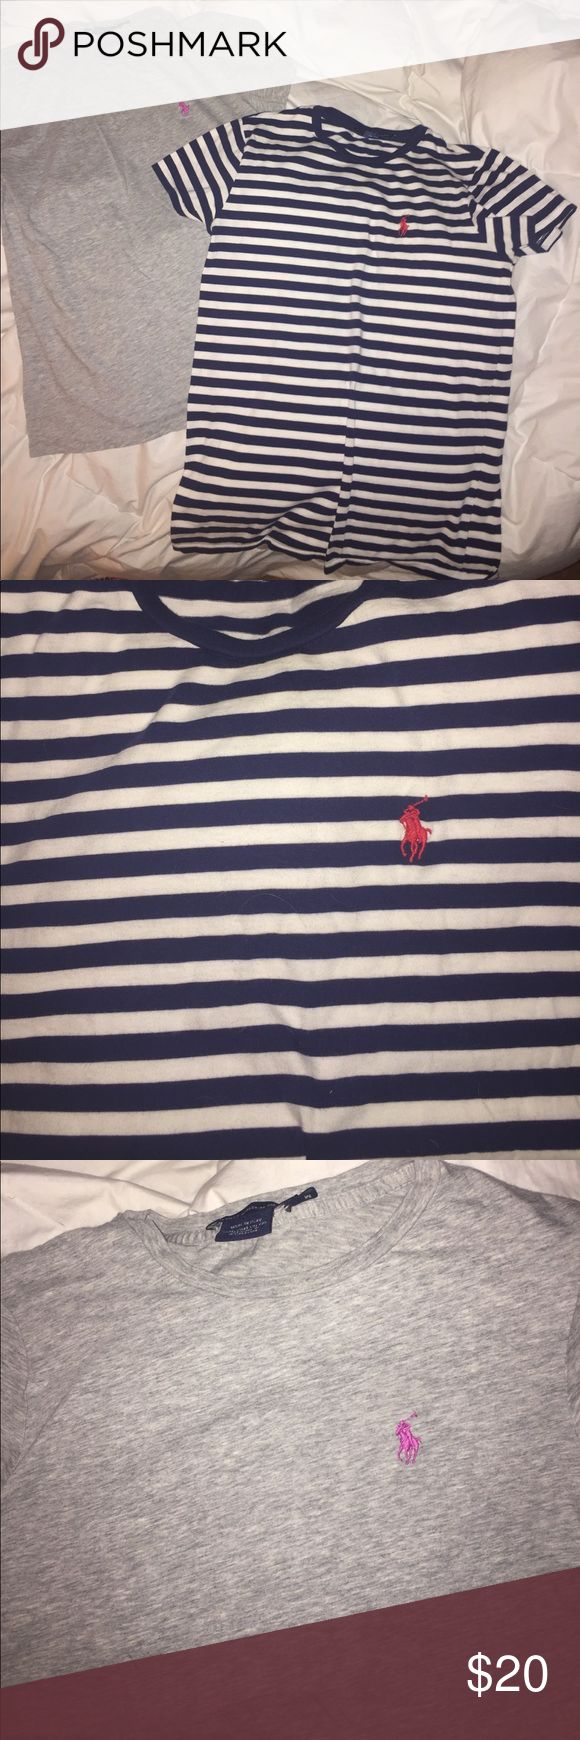 2 ladies Polo T's. 2 ladies Medium. Polo Sport by Ralph Lauren fitted T's. Being sold together to save YOU $! Like New condition! 1-light Heather grey with Pink Polo horse. 2-Navy & White horizontal stripes with Red Polo horse (very nautical looking) both Tops have a round neck line. Great look to dress up or dress down! Price reflects both Tops shown in pictures! Polo by Ralph Lauren Tops Tees - Short Sleeve